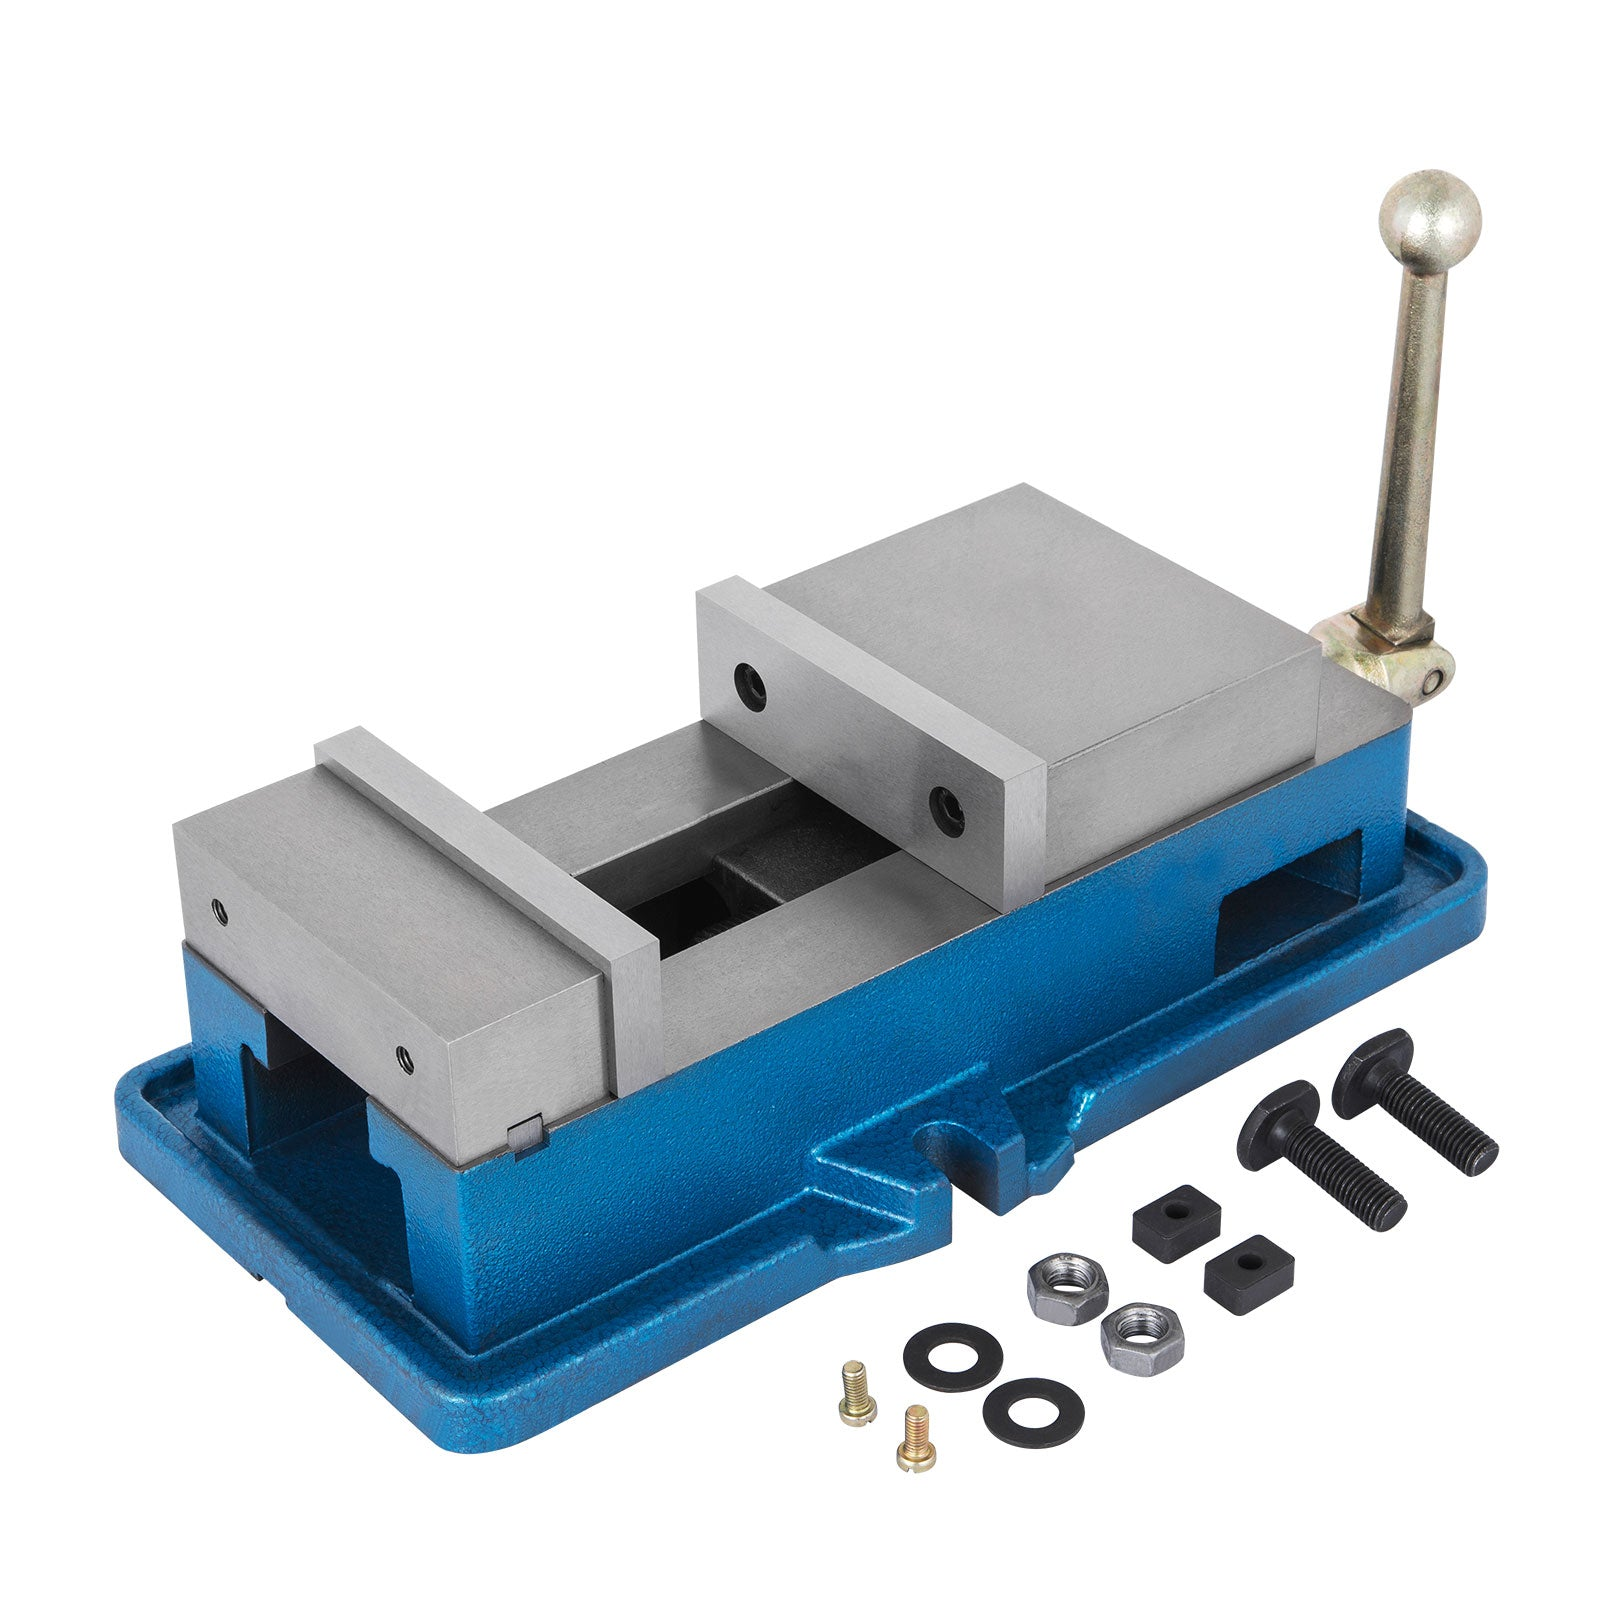 "3"" 80mm Non-swivel Milling Lock Vise Bench Clamp Accu-lock Precision 80000 Psi"